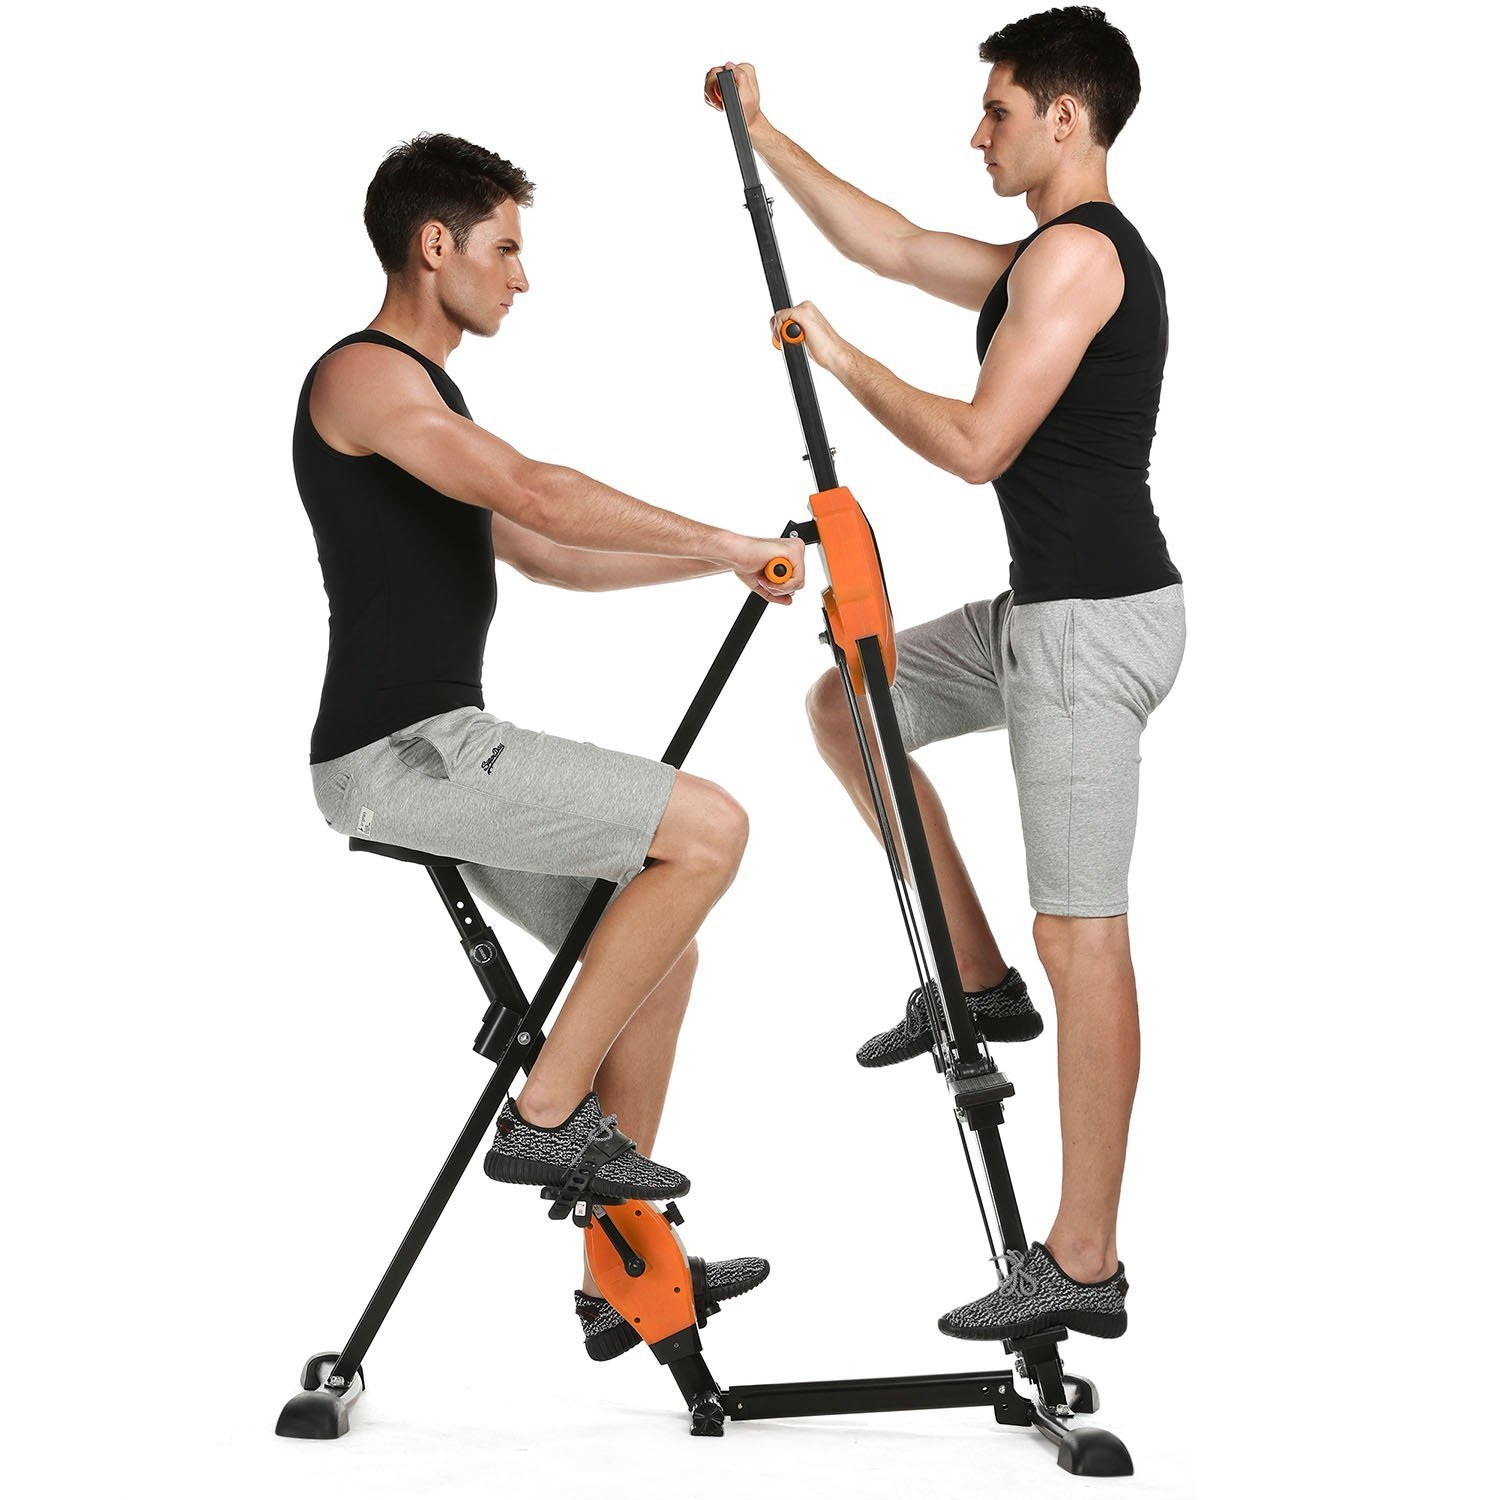 Fanala Vertical Climber Folding Exercise Fitness Climbing Machine, Exercise Bike for Home Body Trainer by Fanala